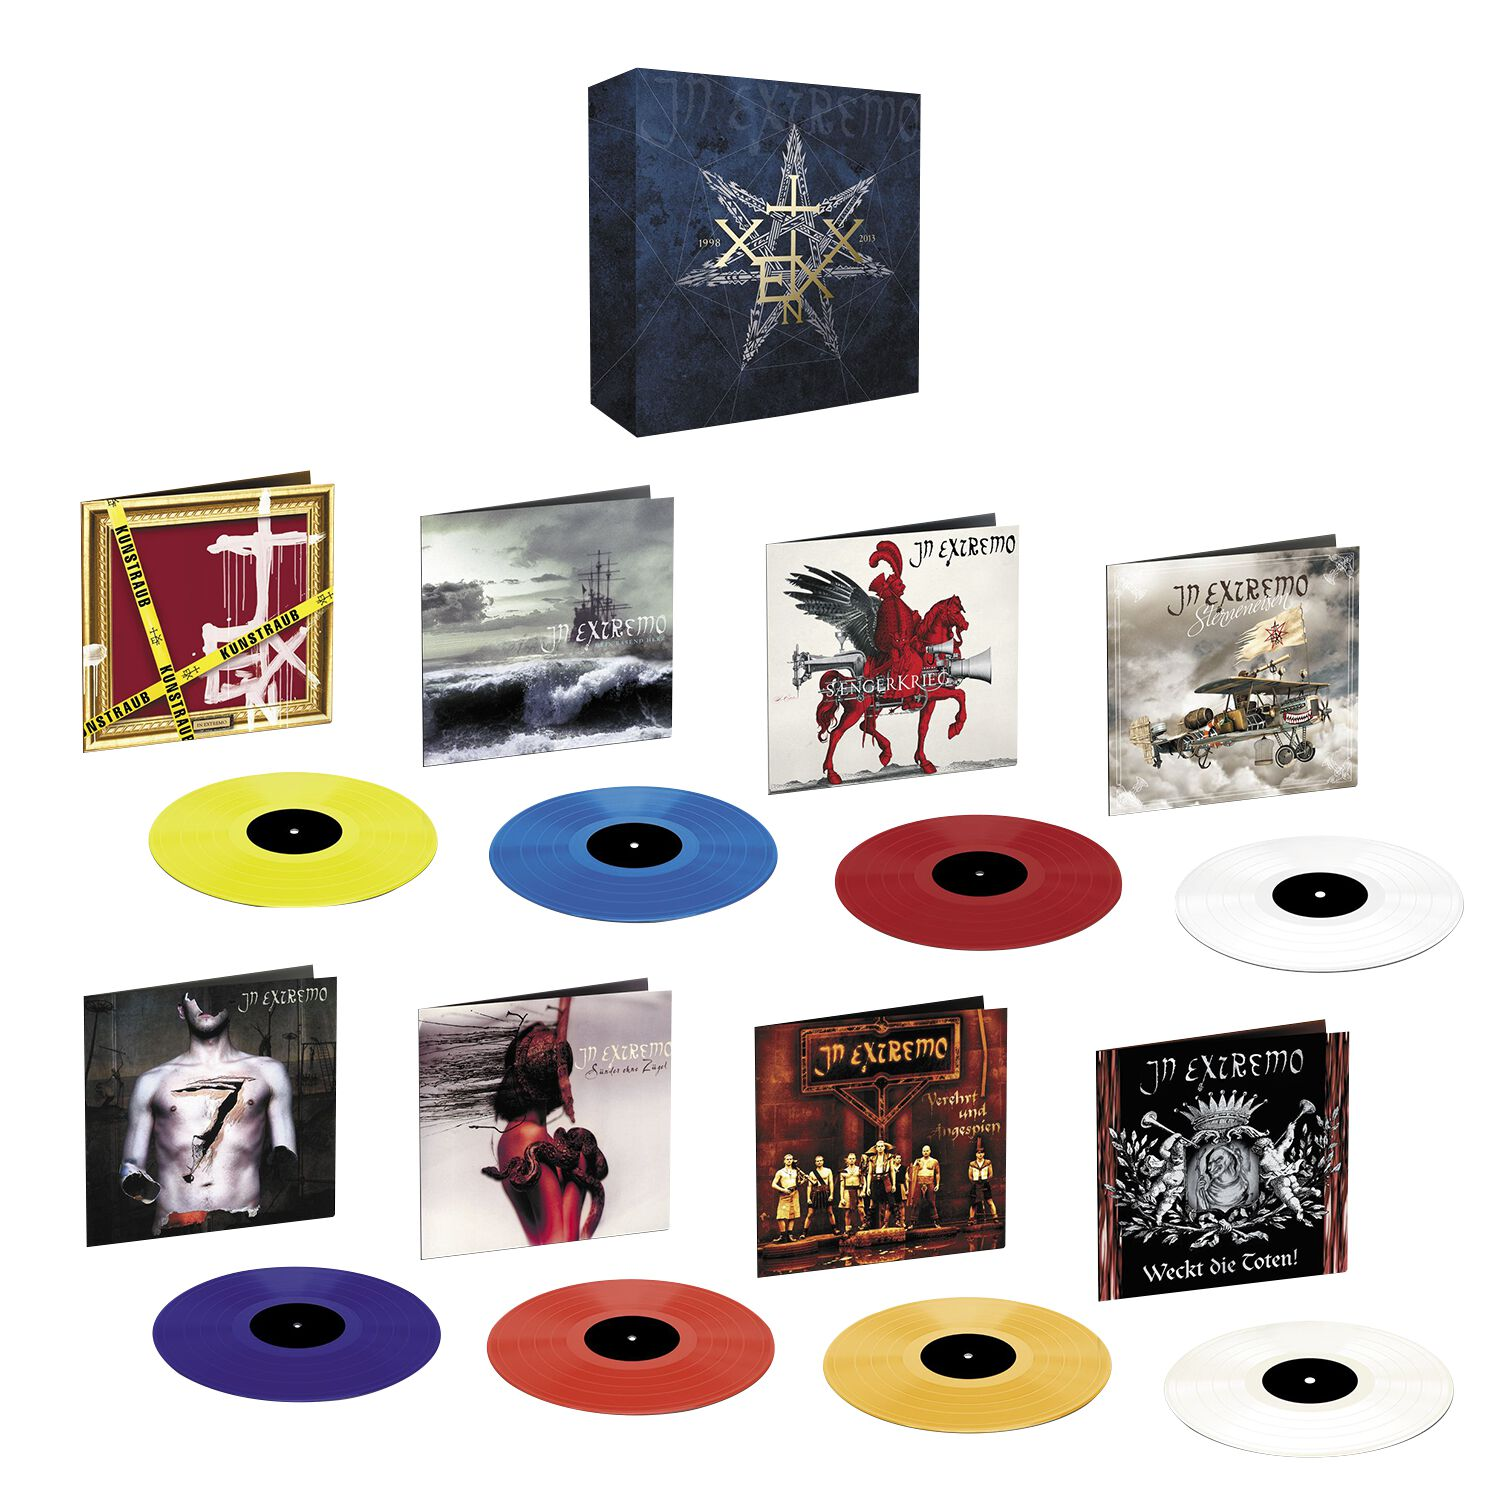 Image of In Extremo 20 Wahre Jahre / Vinyl Collection 1998 - 2013 8-LP Standard